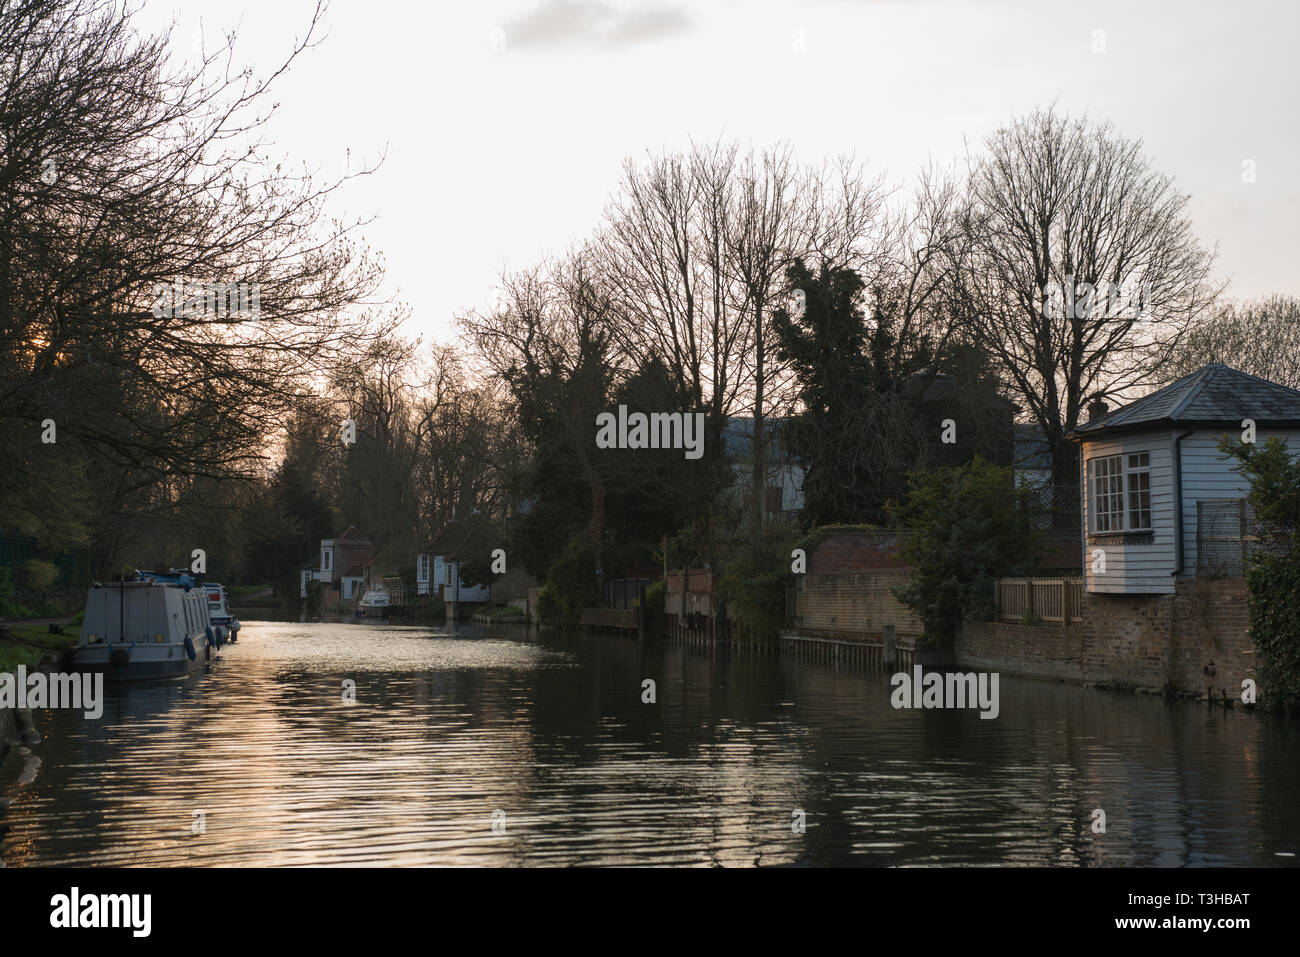 Sun setting on the Ware Lock. The lock on the River Lee Navigation. The huts/ gazebos (summerhouses) run along the bank of the River Lee. - Stock Image